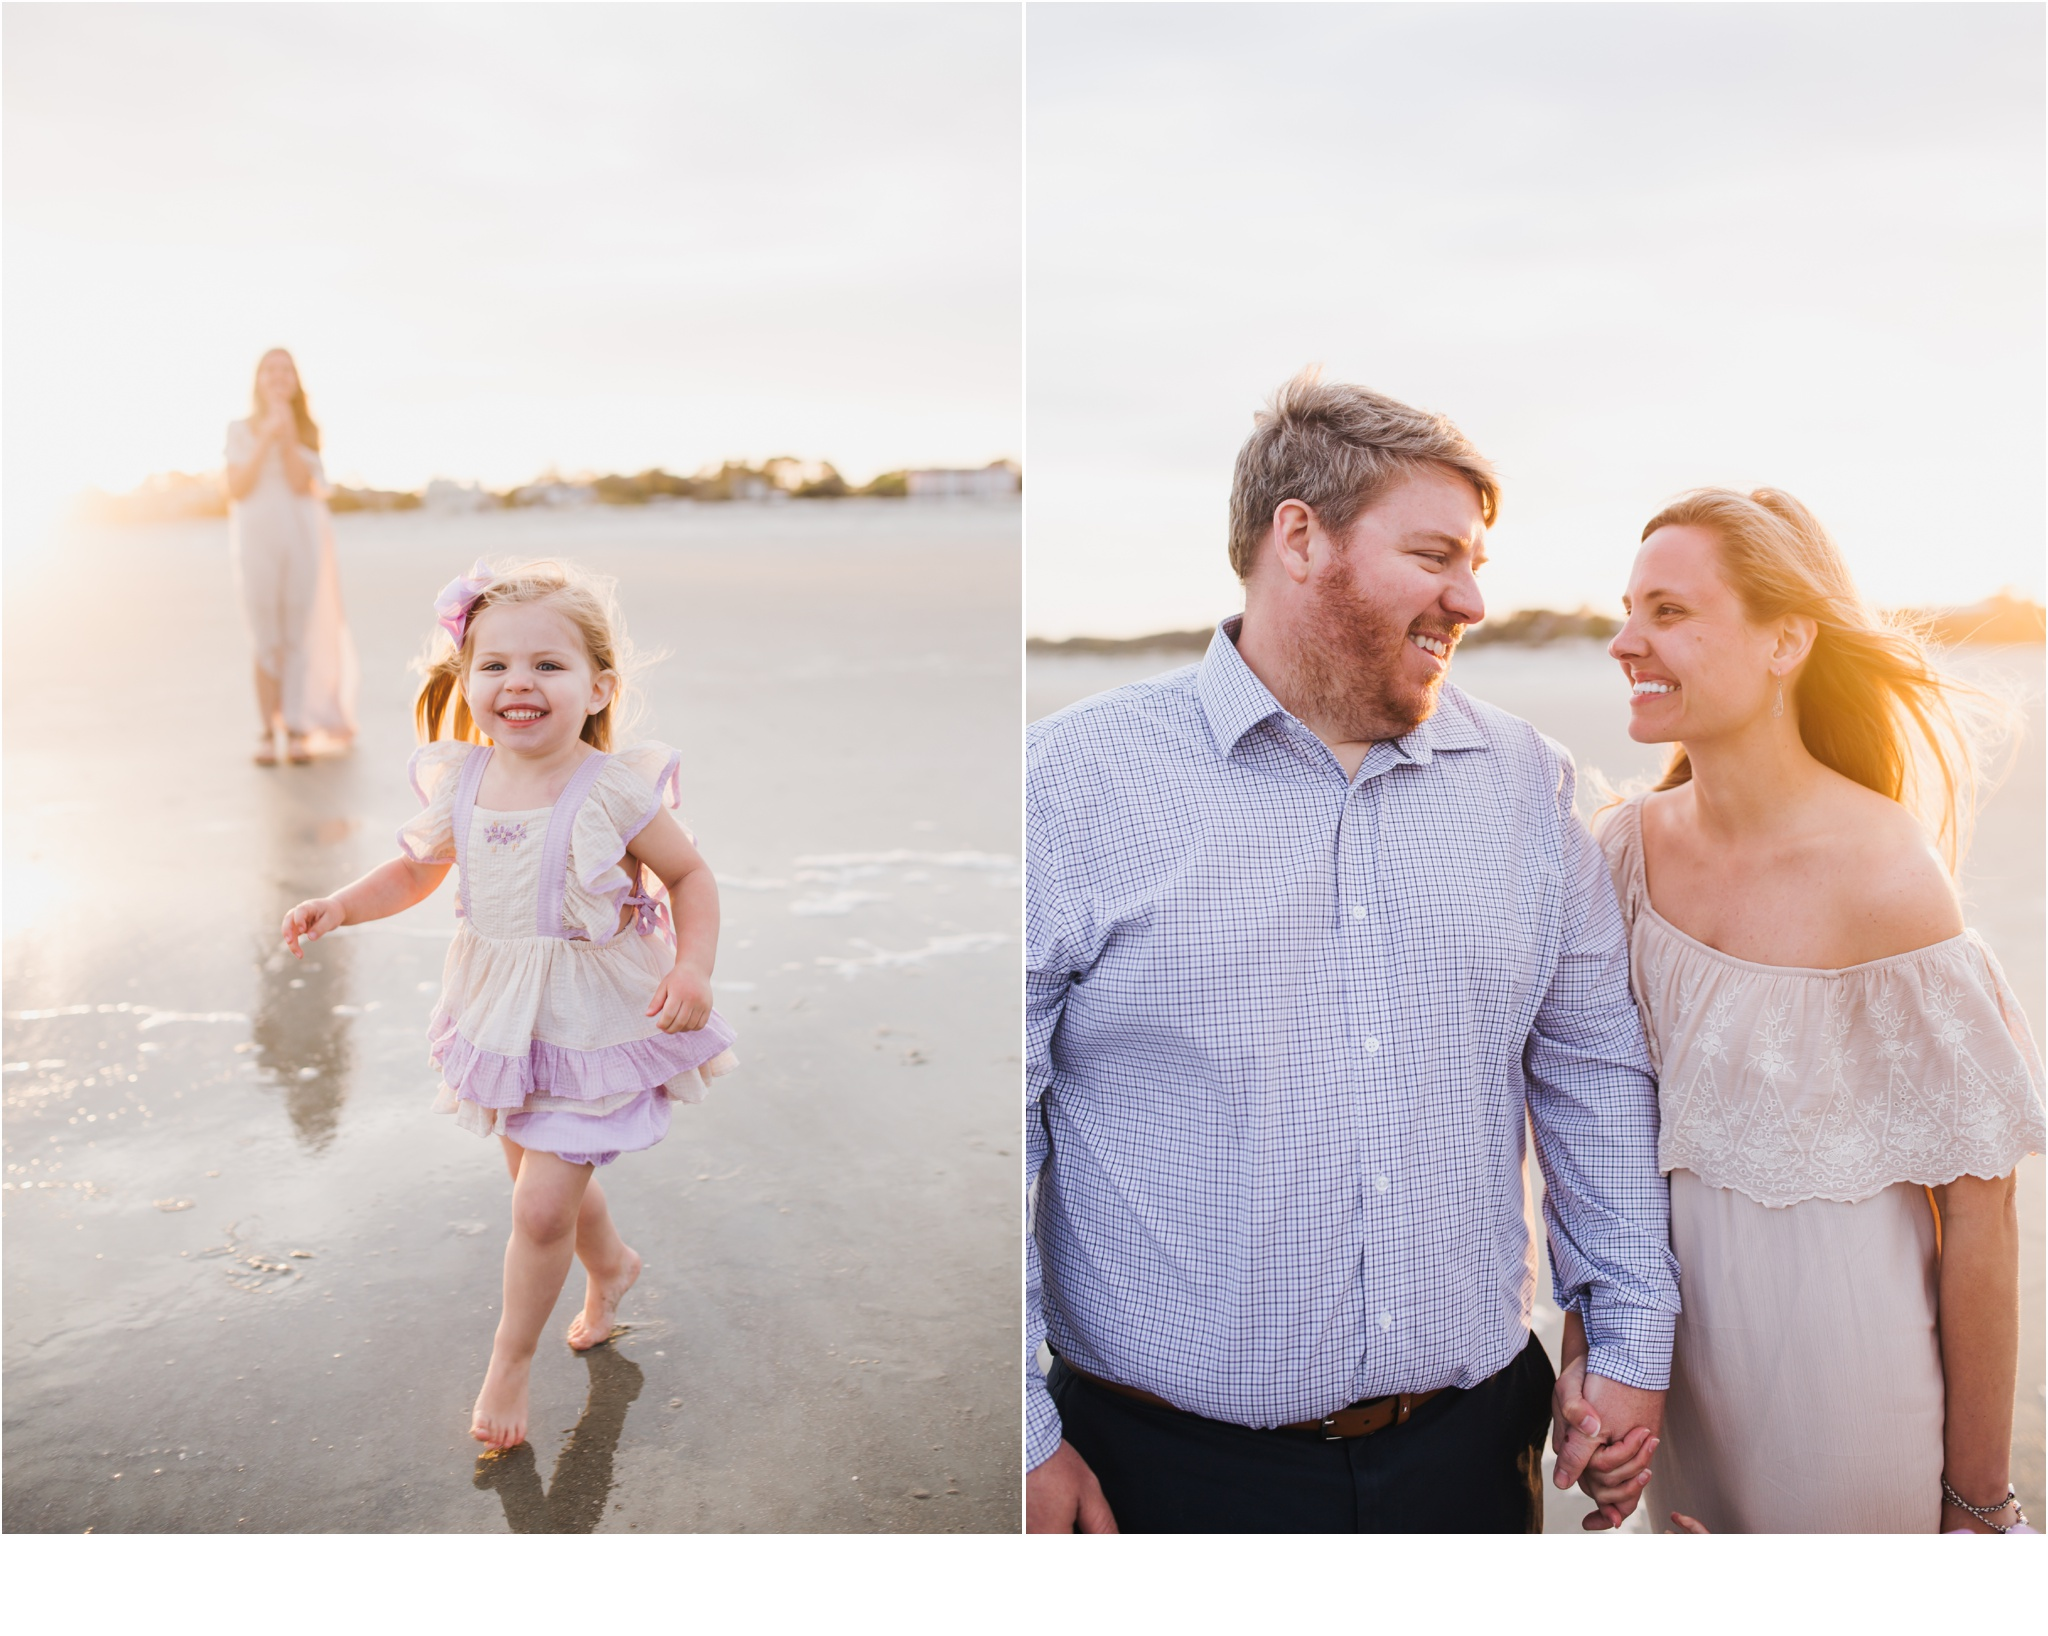 Rainey_Gregg_Photography_St._Simons_Island_Georgia_California_Wedding_Portrait_Photography_1757.jpg